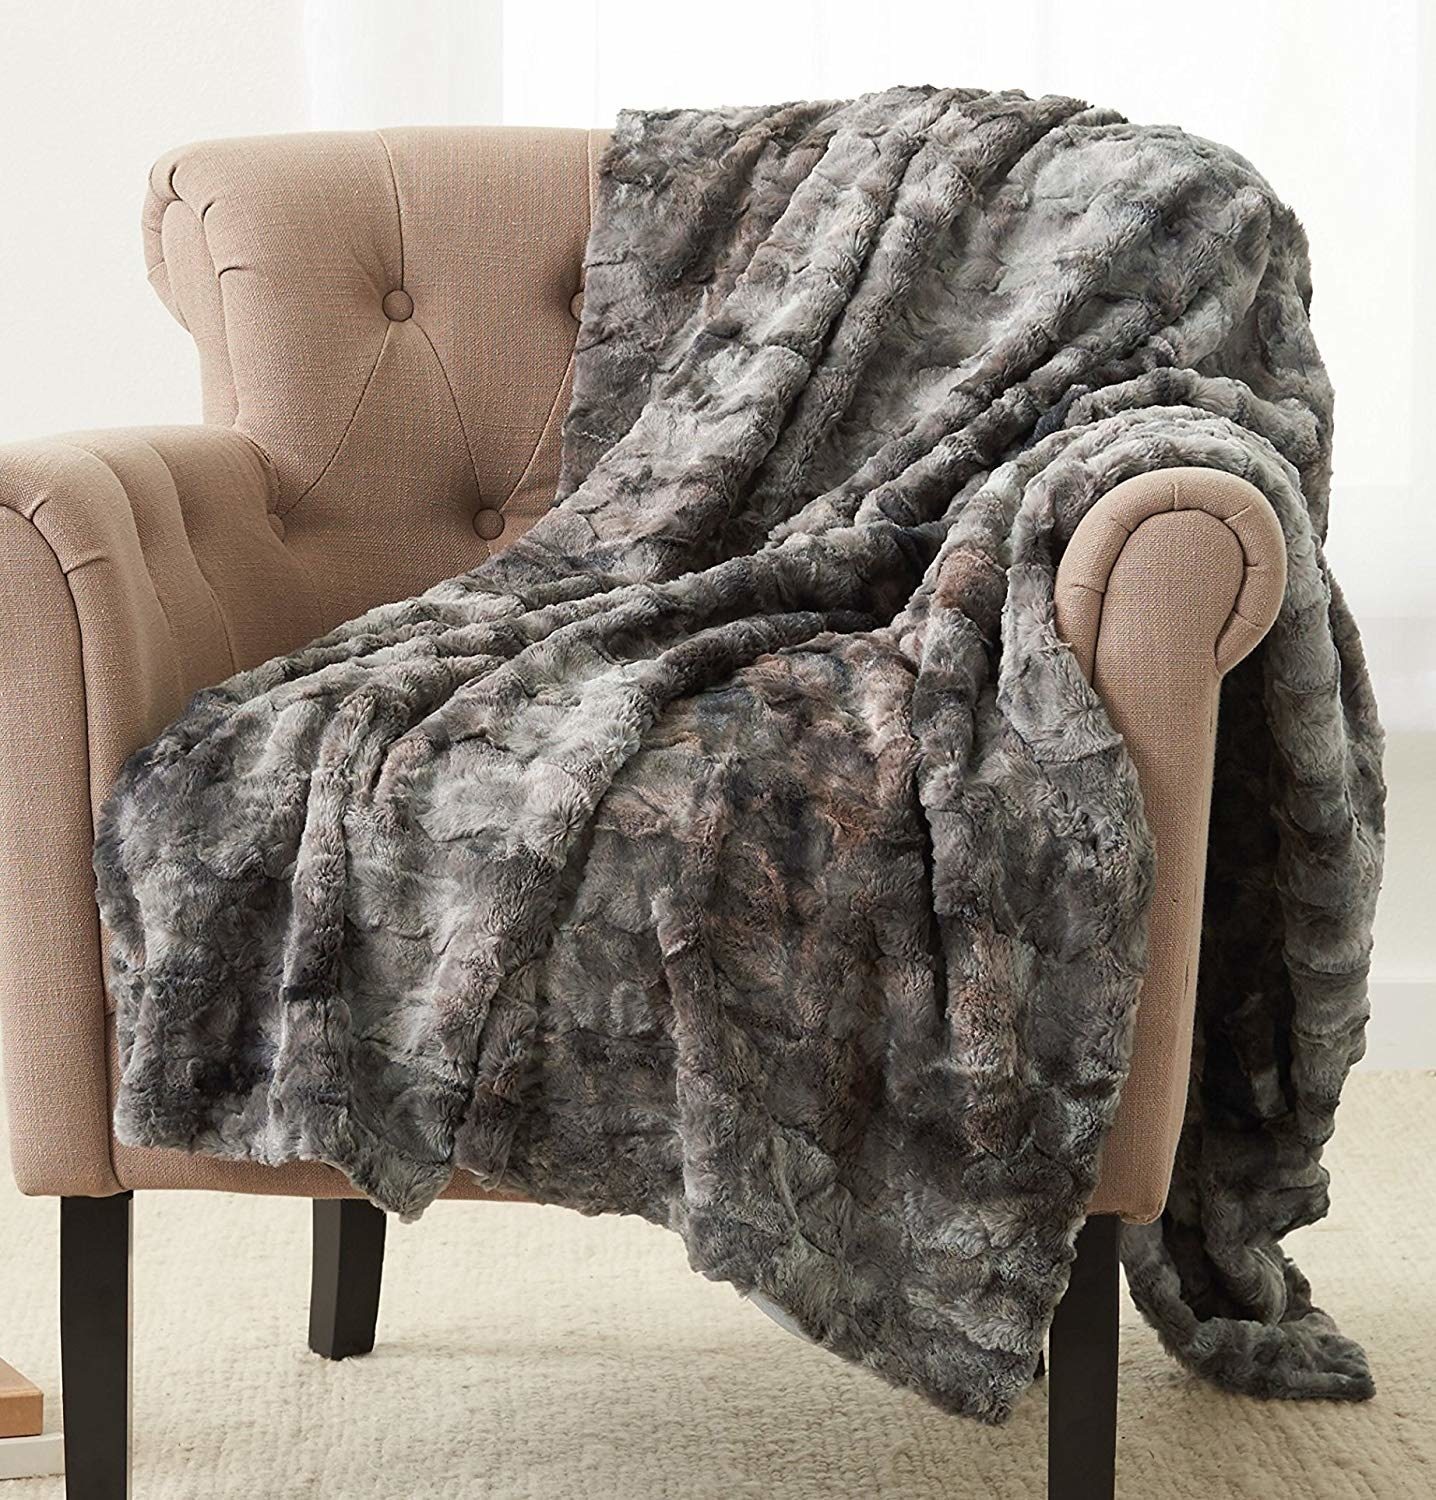 arm chair with light gray faux fur throw